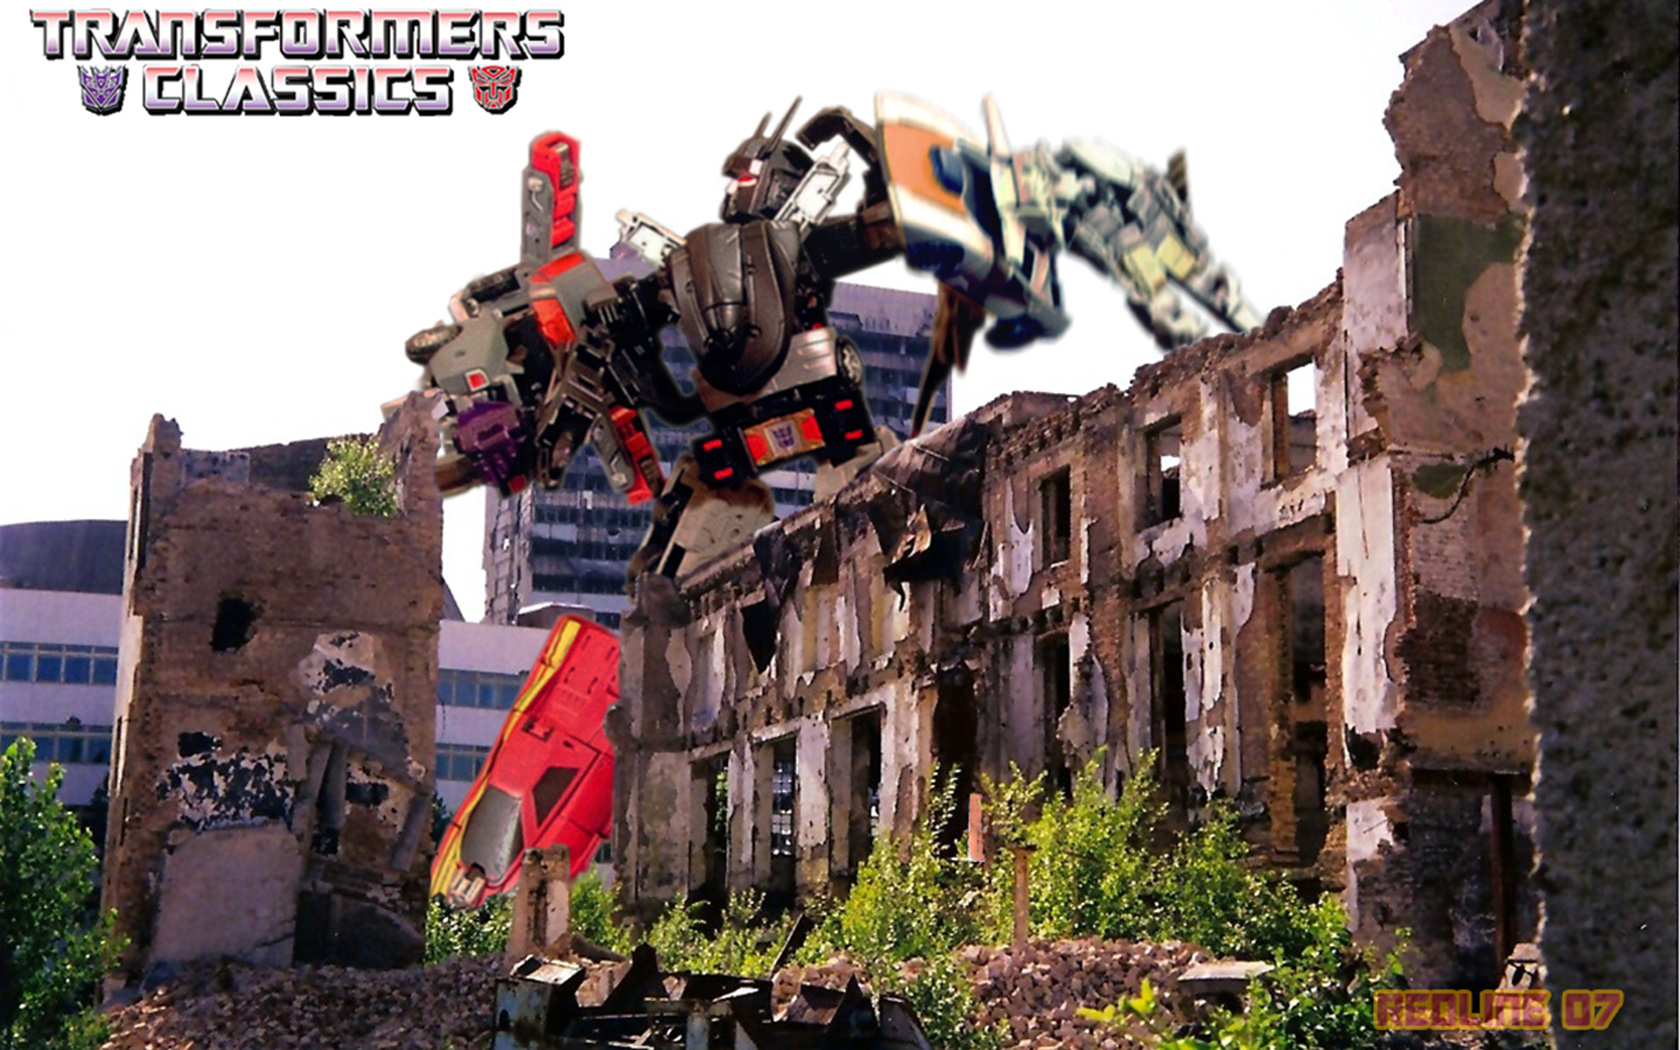 Optimus Prime Riding Grimlock Wallpapers  HD Wallpapers 1680x1050